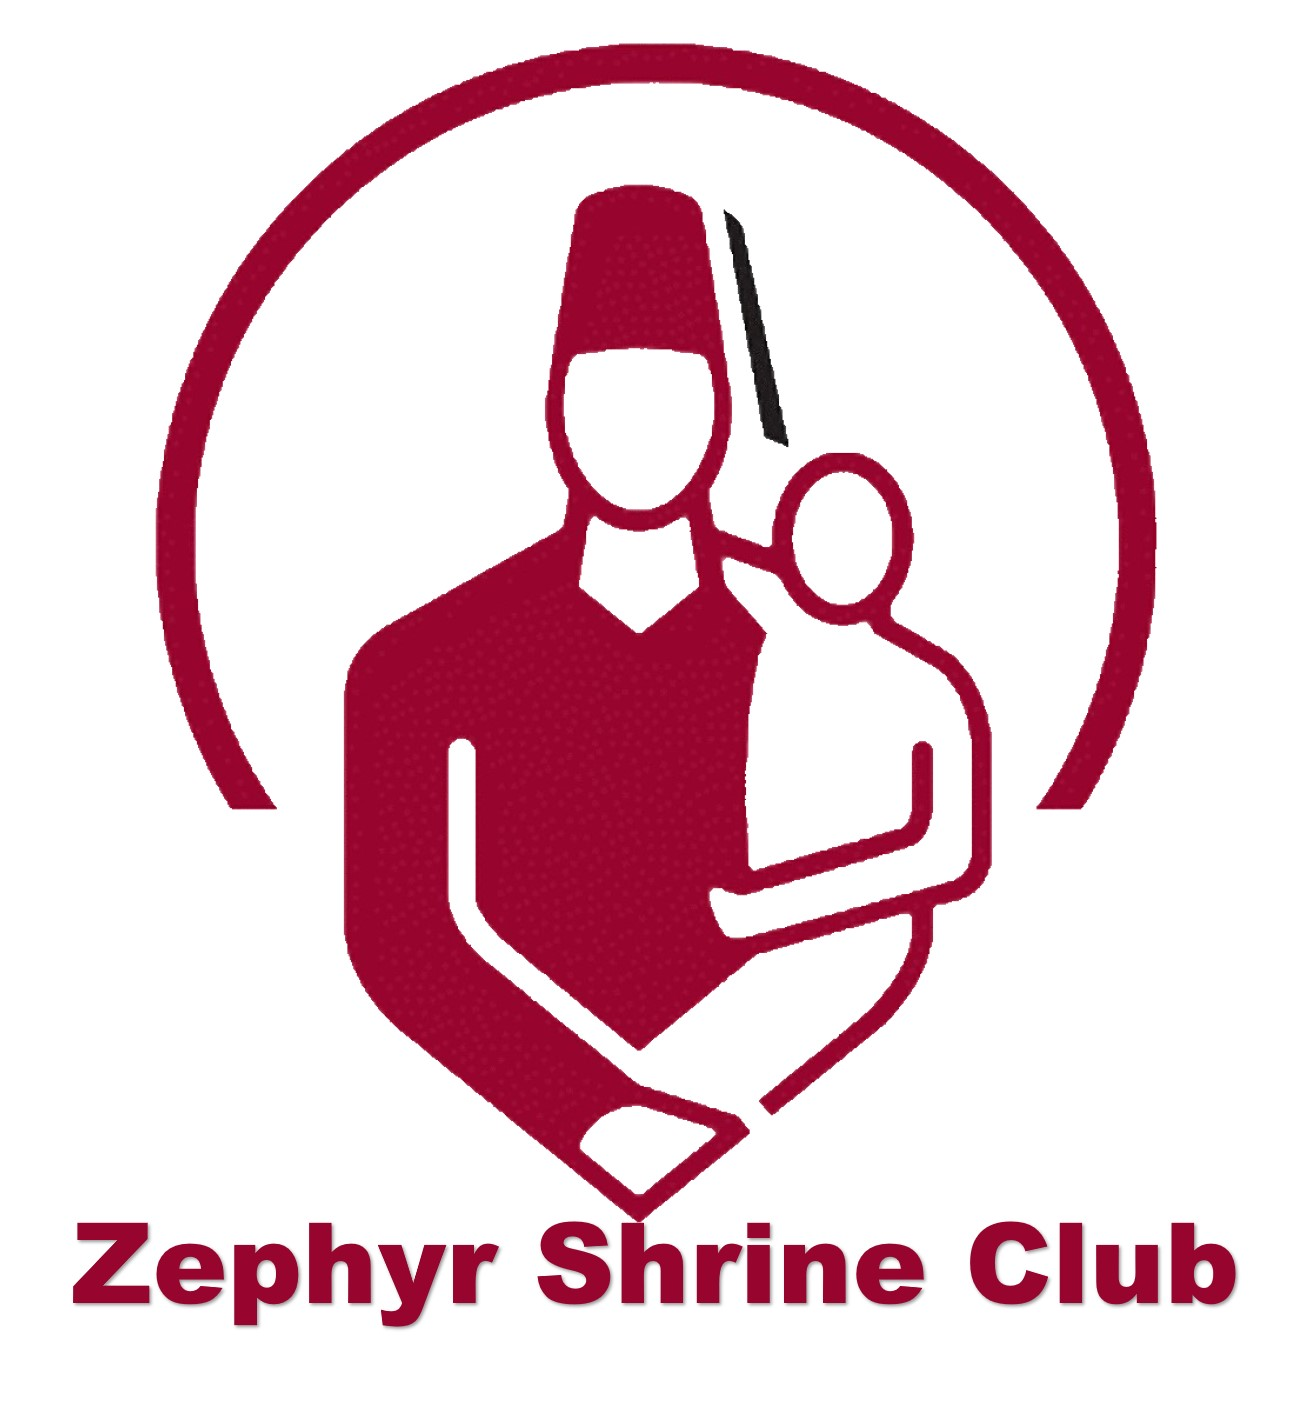 Zephyr Shrine Club    Telephone: 207-694-5876   Website